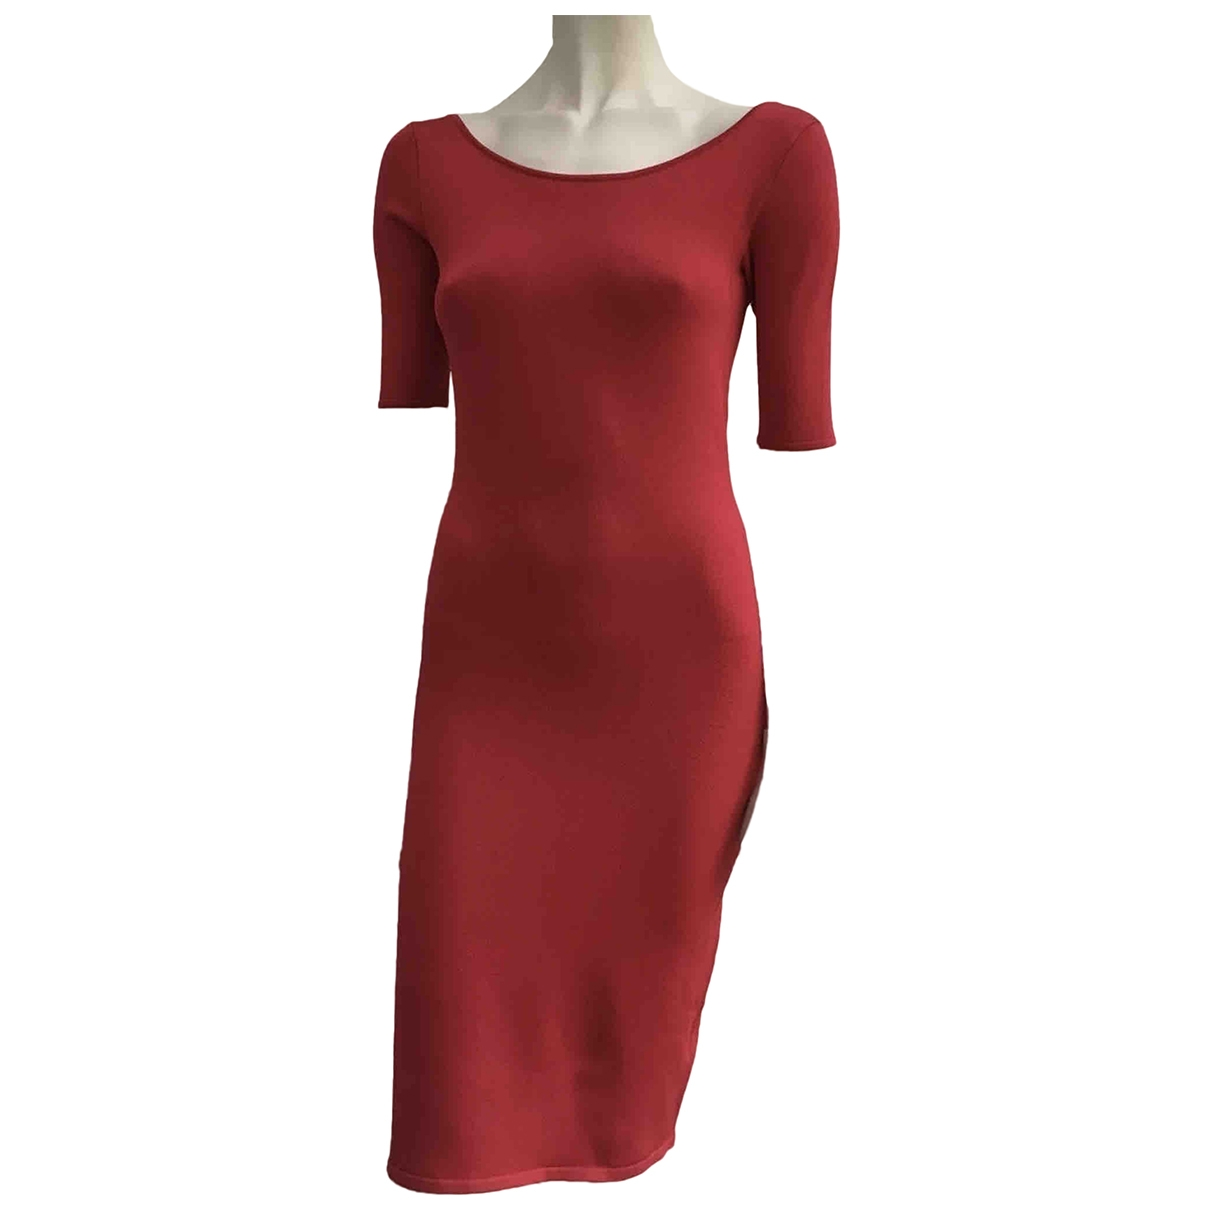 Ralph Lauren \N Red Silk dress for Women S International